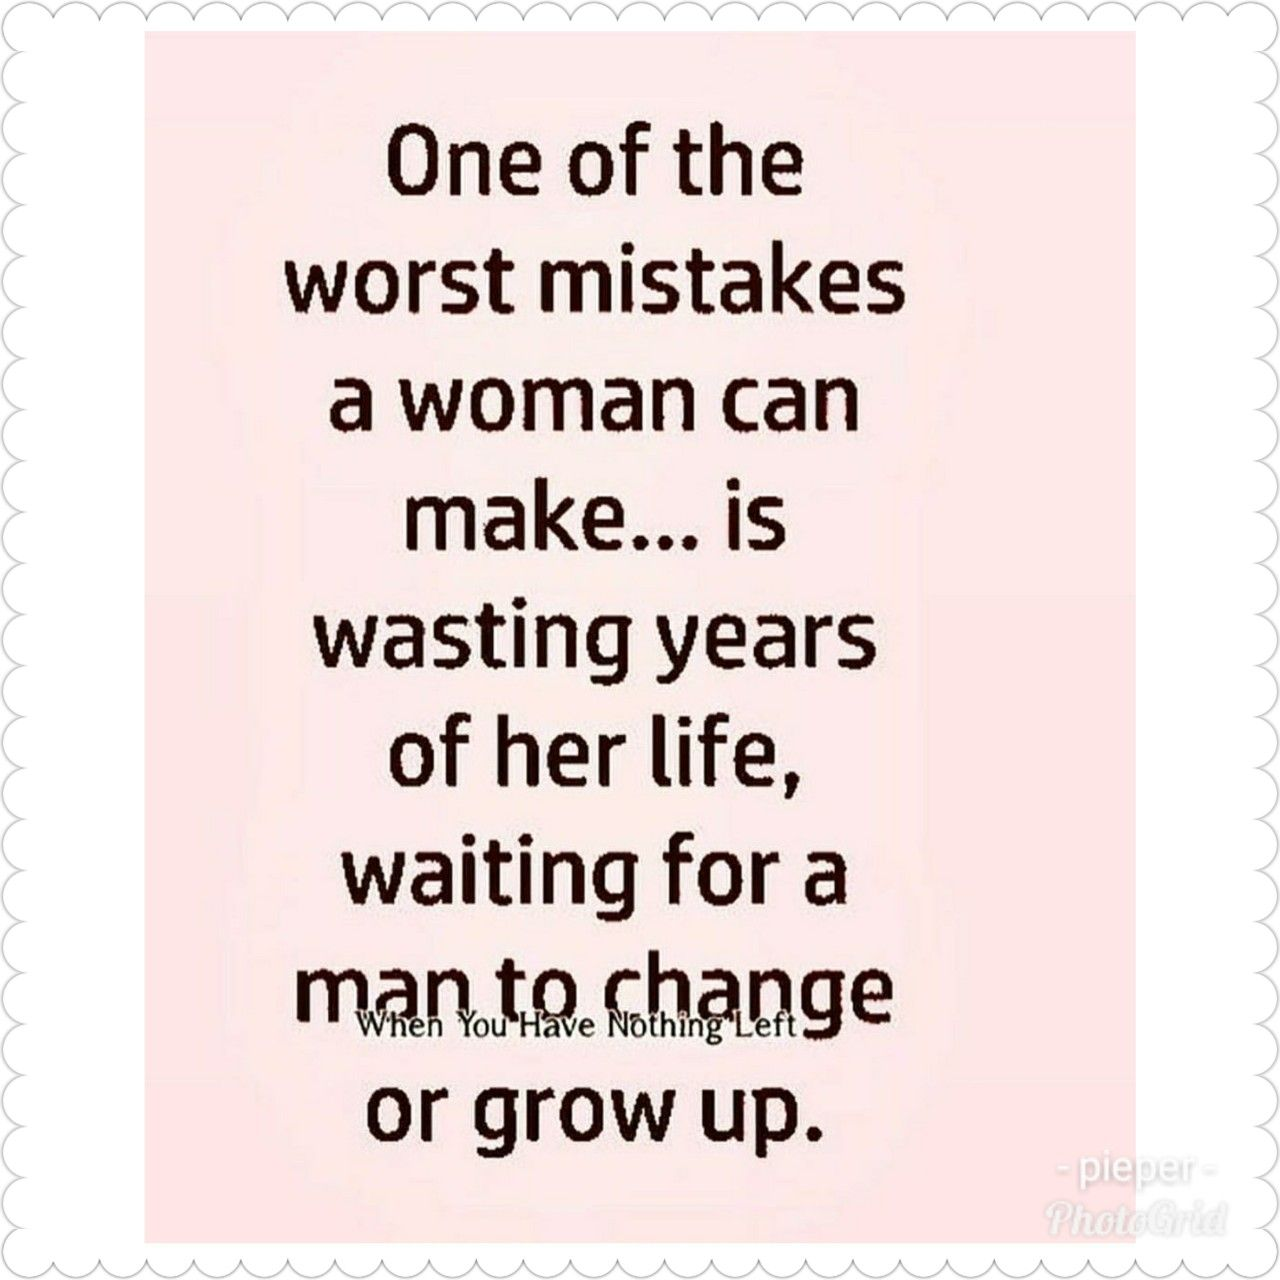 Wasted Too Many Years Waiting For Nothing Had So Much Hope But It Was Thrown Away Personal Quotes Relationship Quotes Stupid Guys